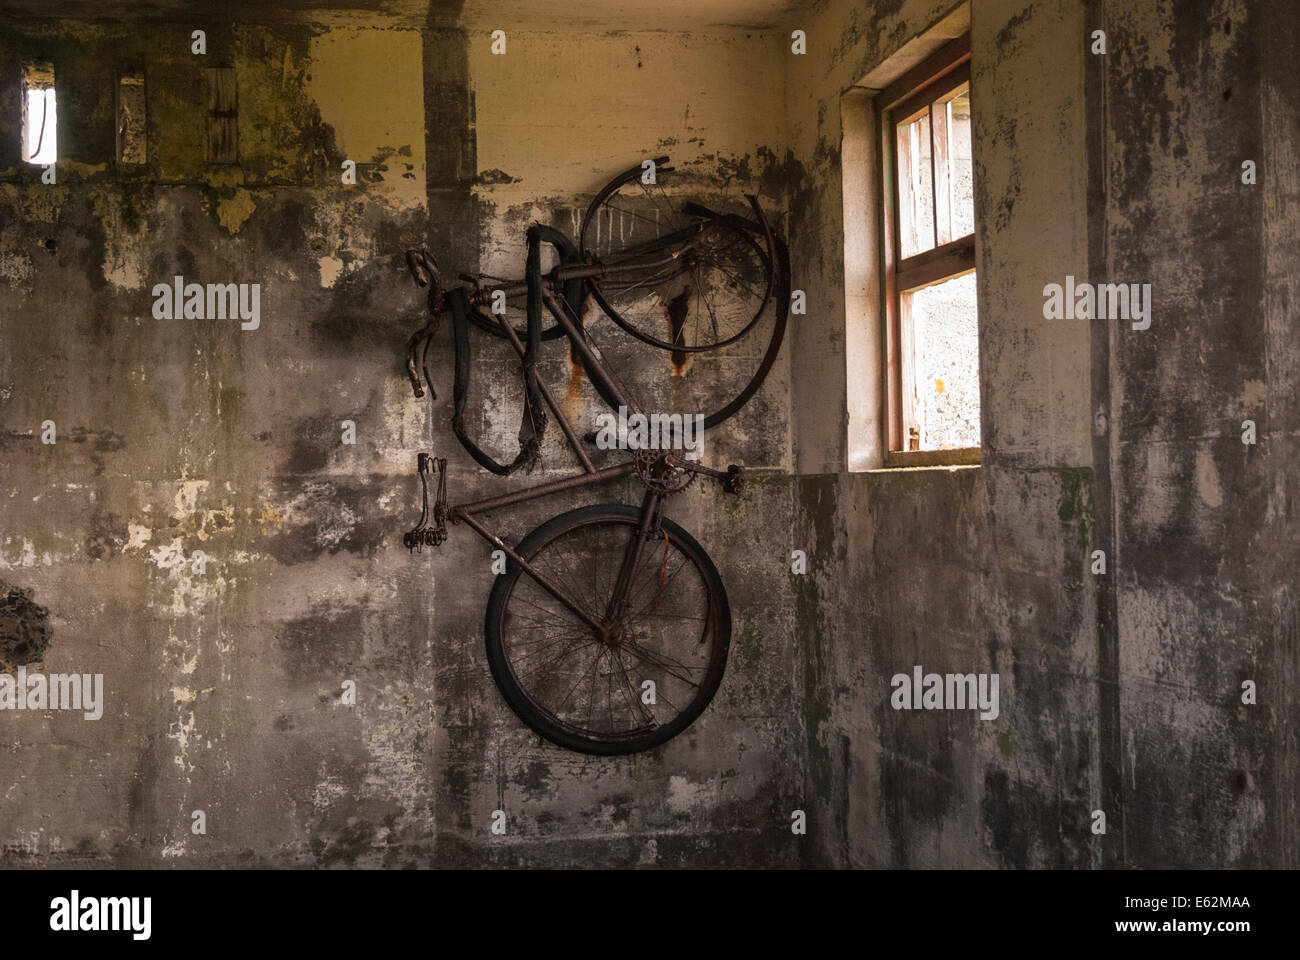 An old rusty bicycle hanging on the wall of a World War 2 defence building in Tankerness, Orkney, Scotland. - Stock Image